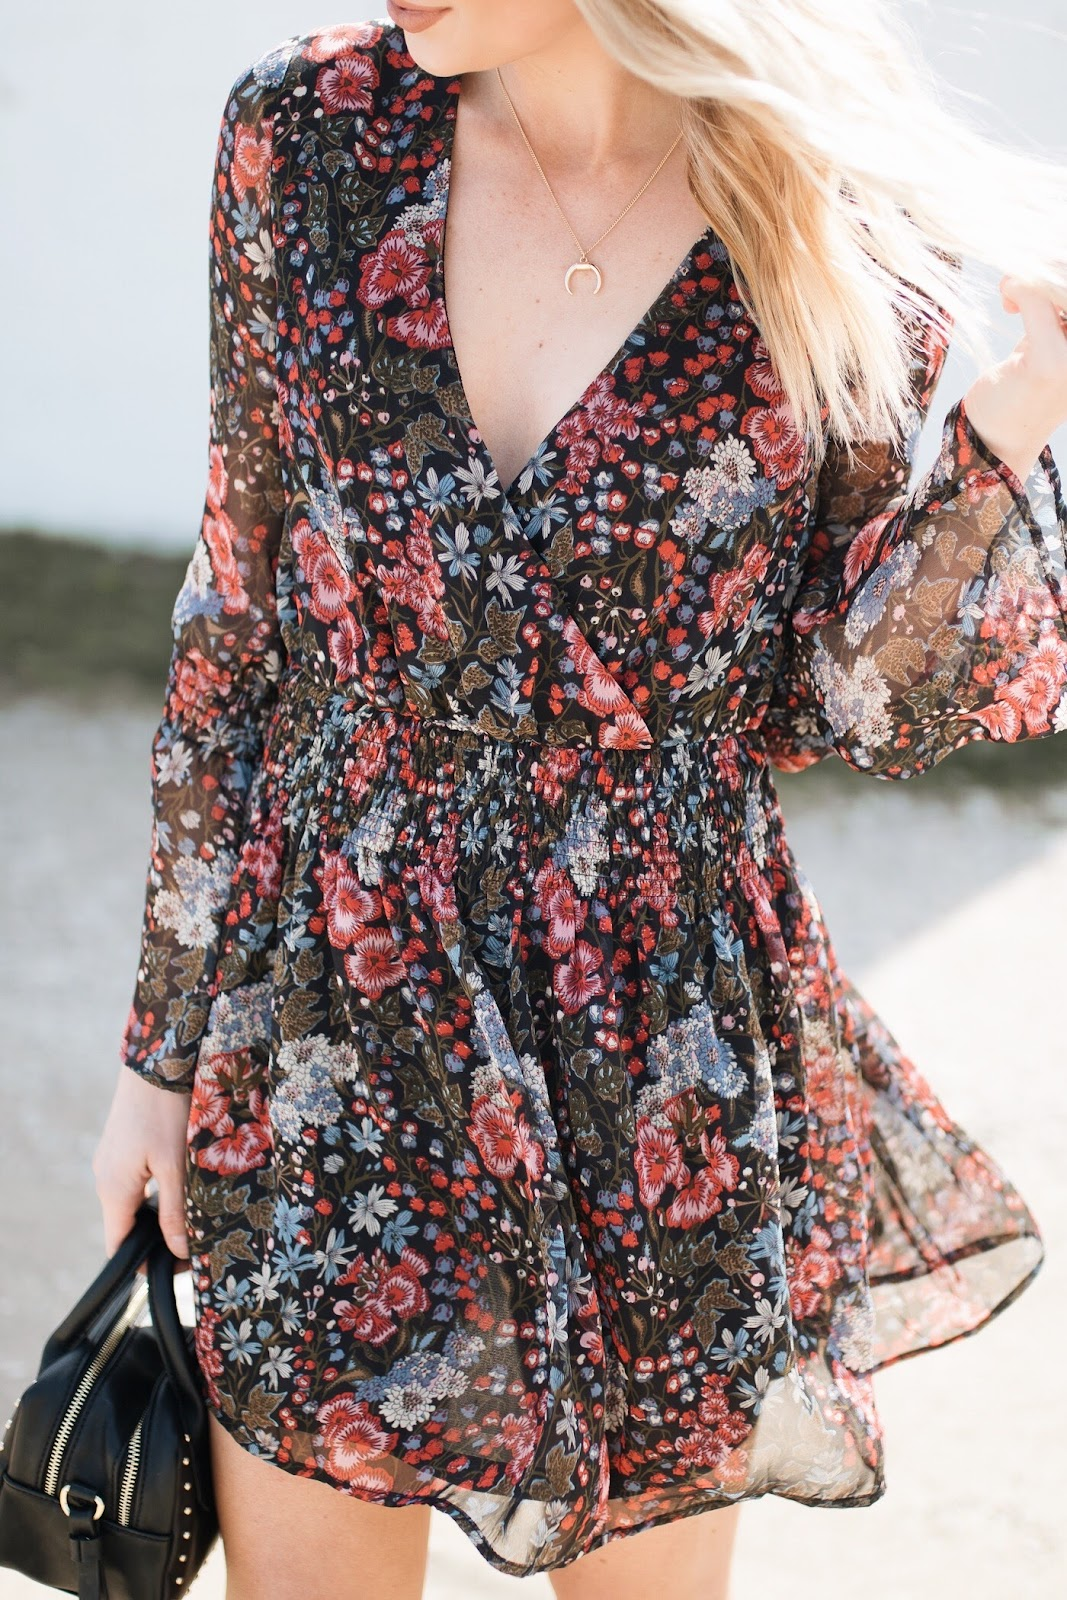 deep v black floral dress, horn necklace